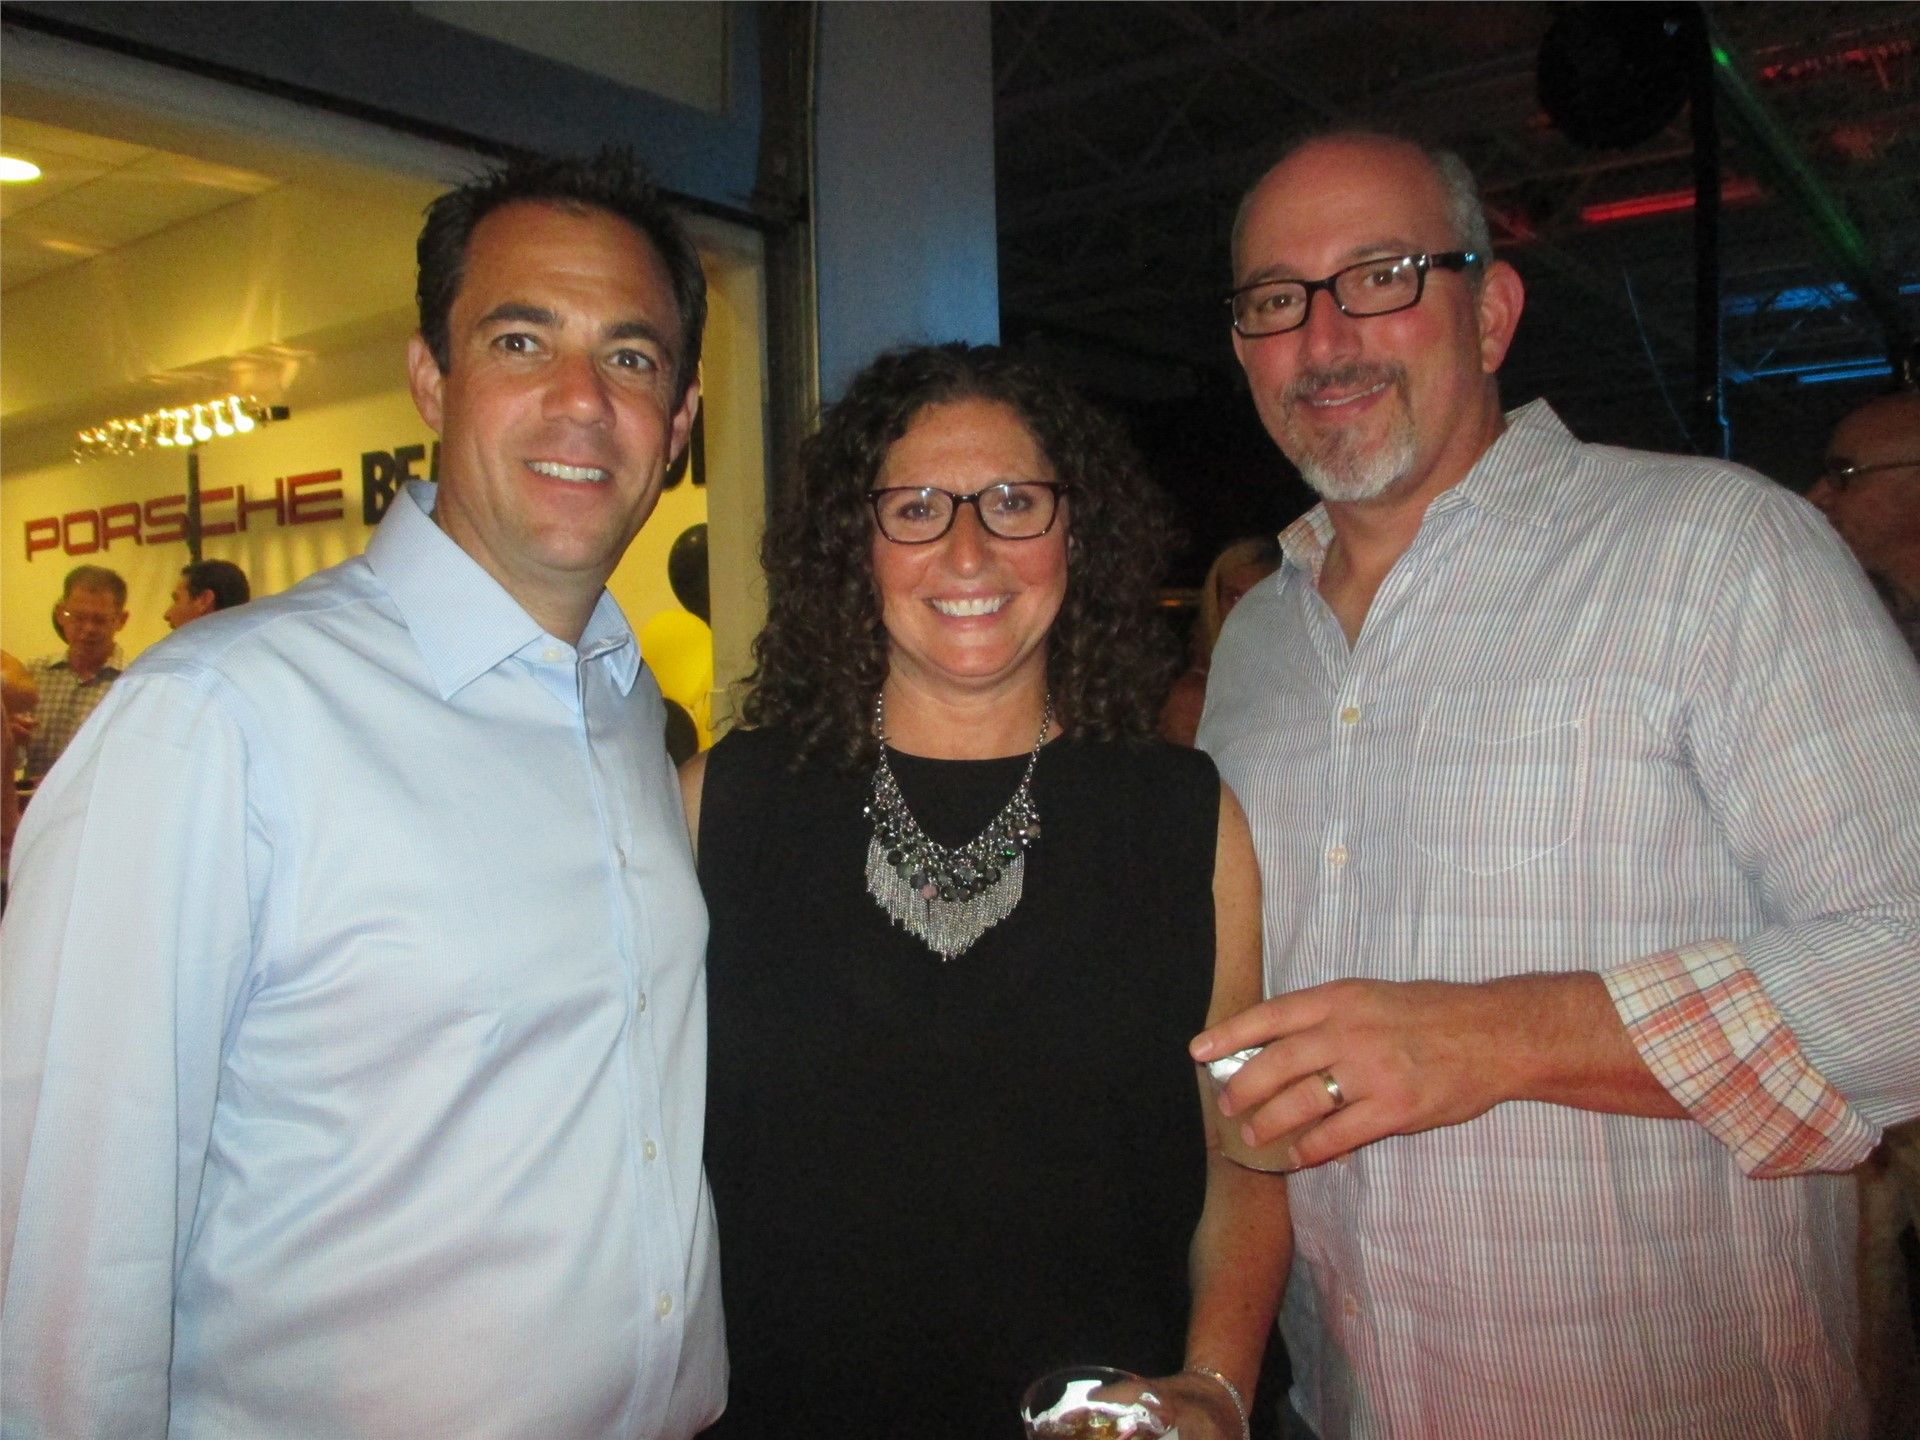 School Board Member Joshua Mintz with Julie and Michael Frayman